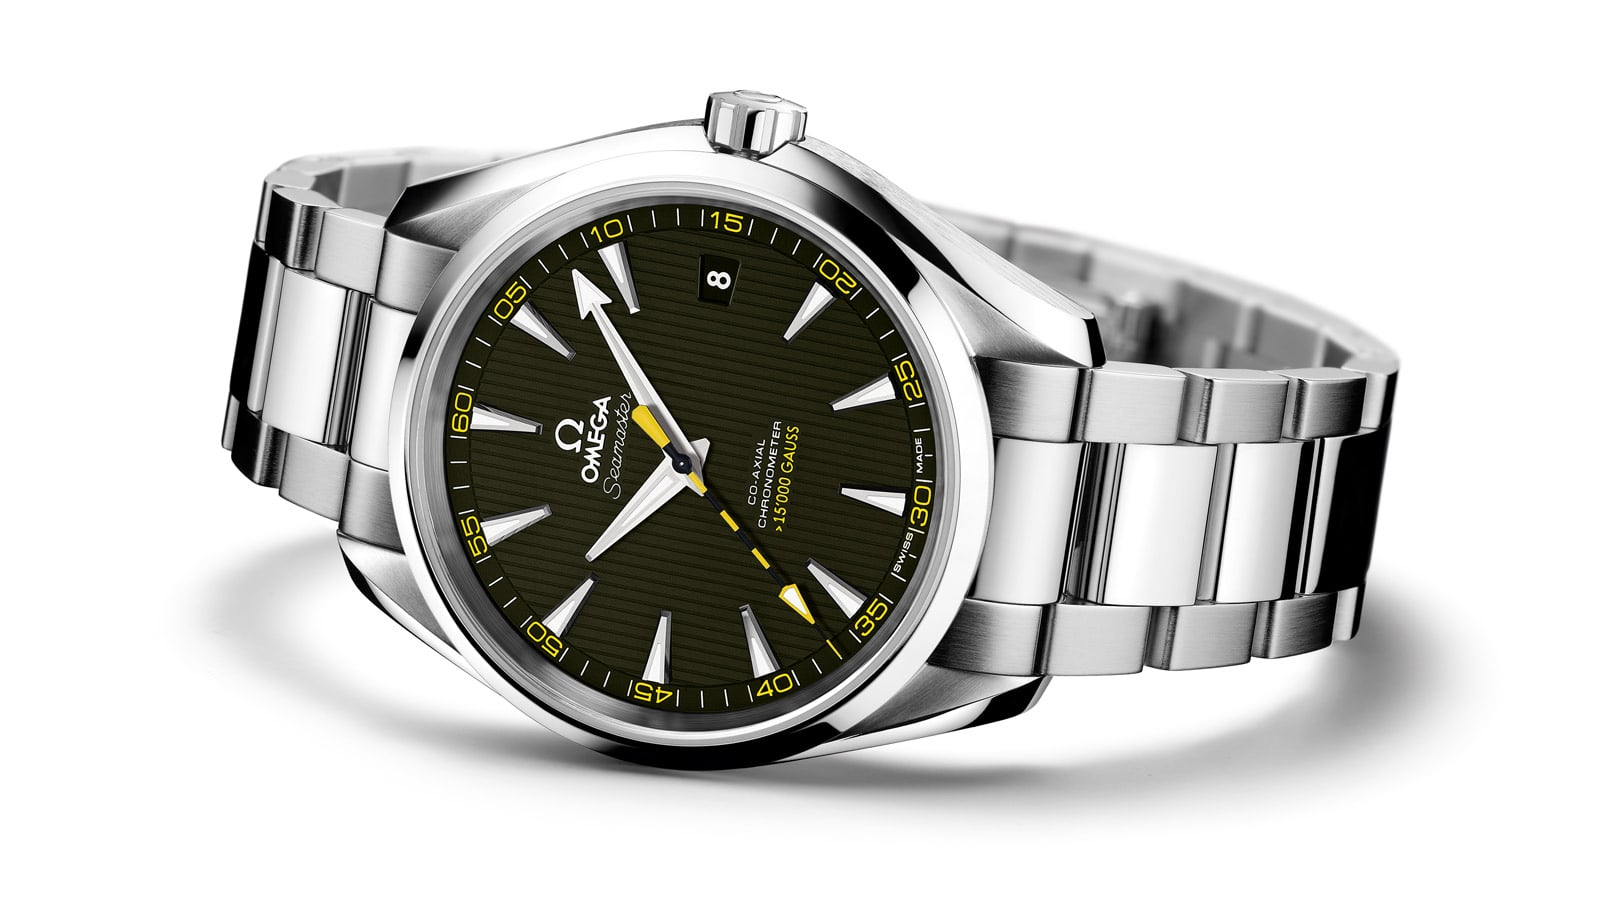 THE OMEGA SEAMASTER AQUA TERRA > 15,000 GAUSS